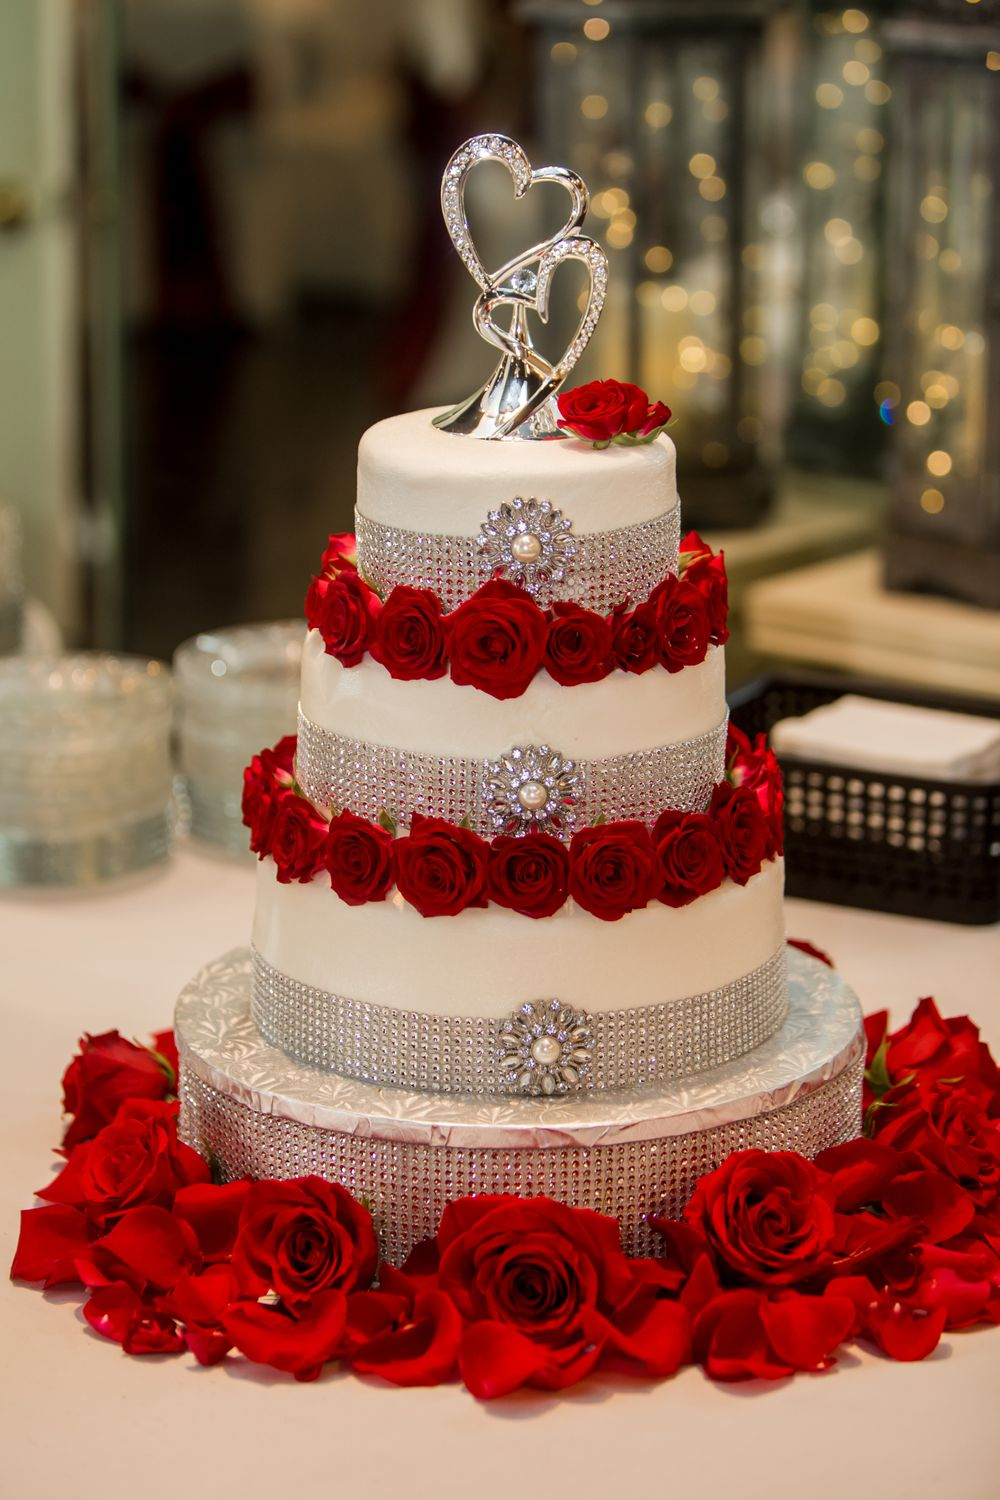 Wedding cake at Winter Green Woods in Lexington, SC